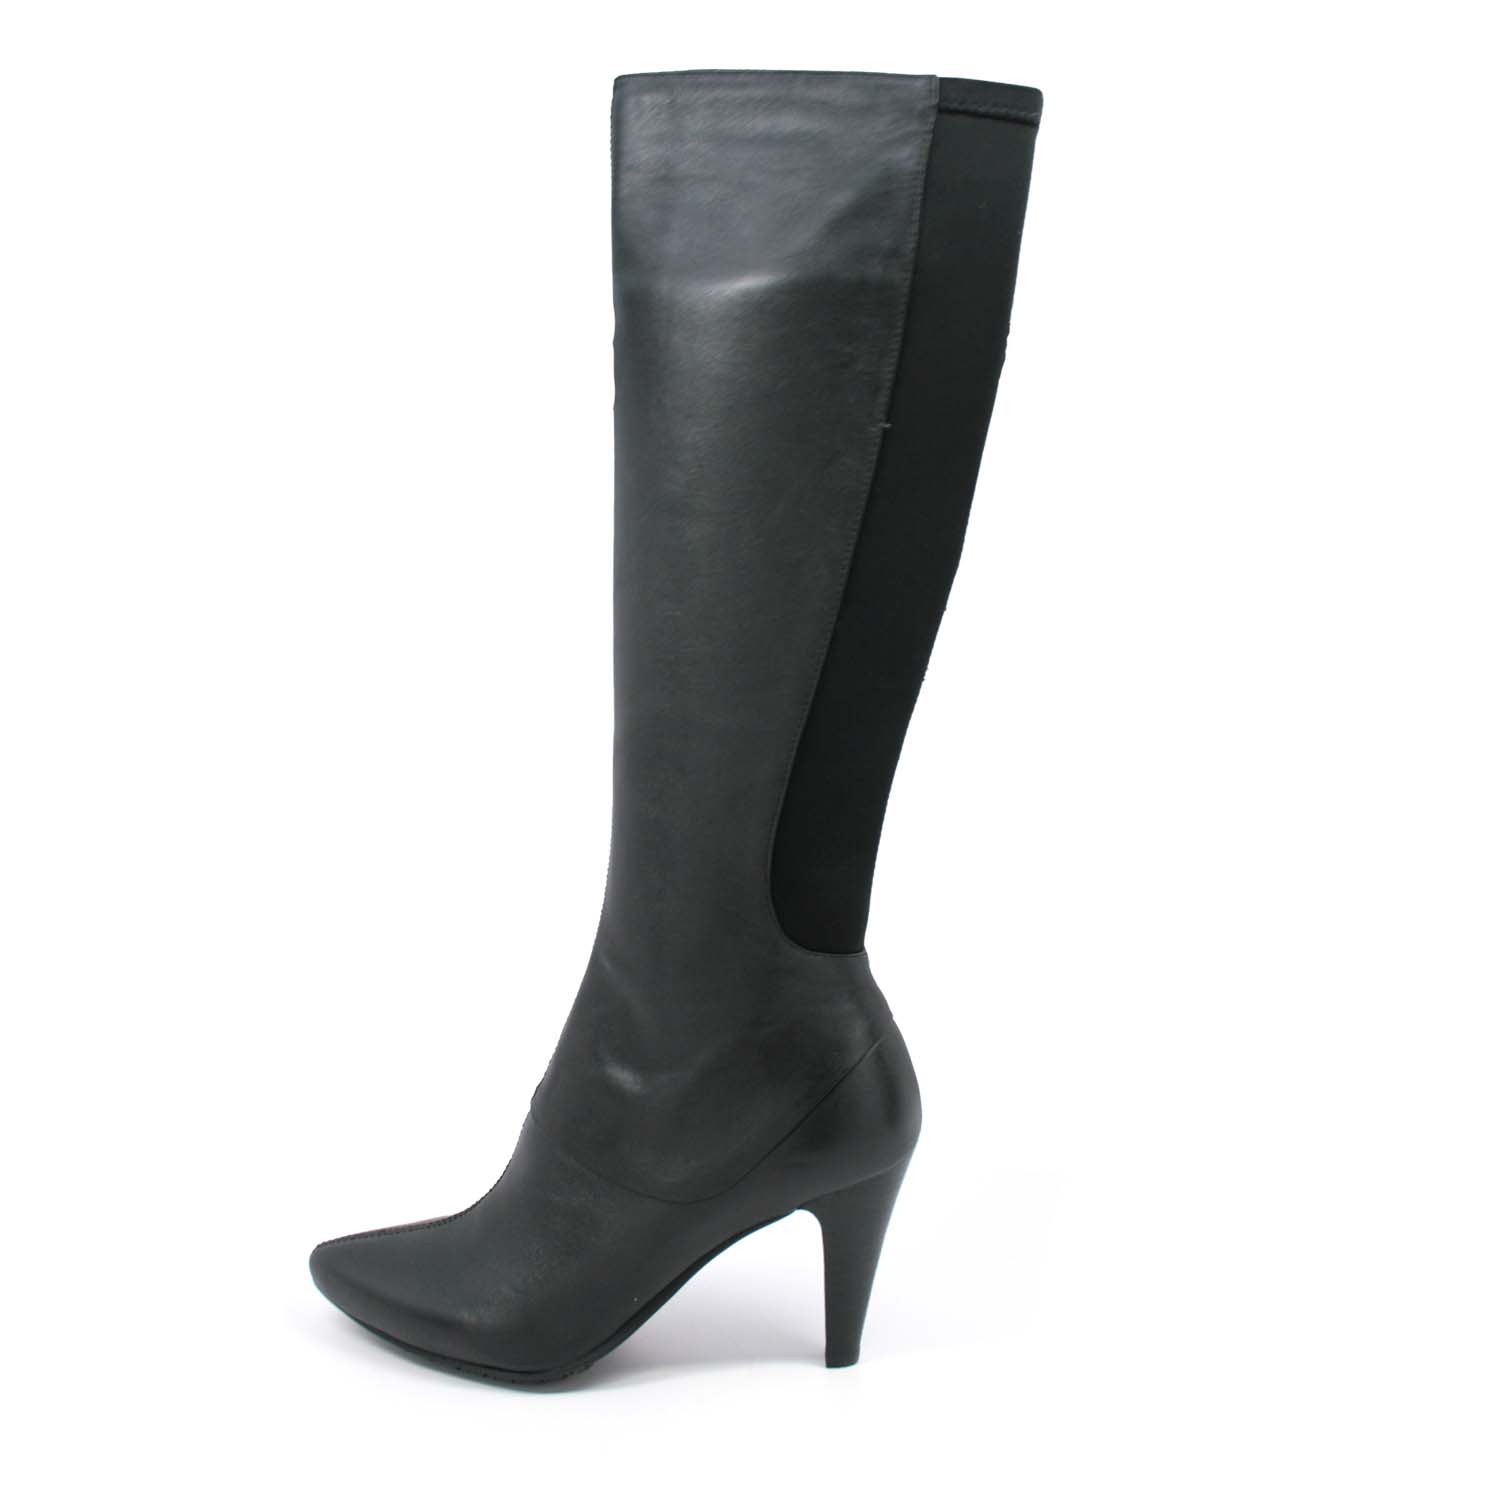 SoleMani Women's Ana Black Leather 12 calf size [ana blk ...